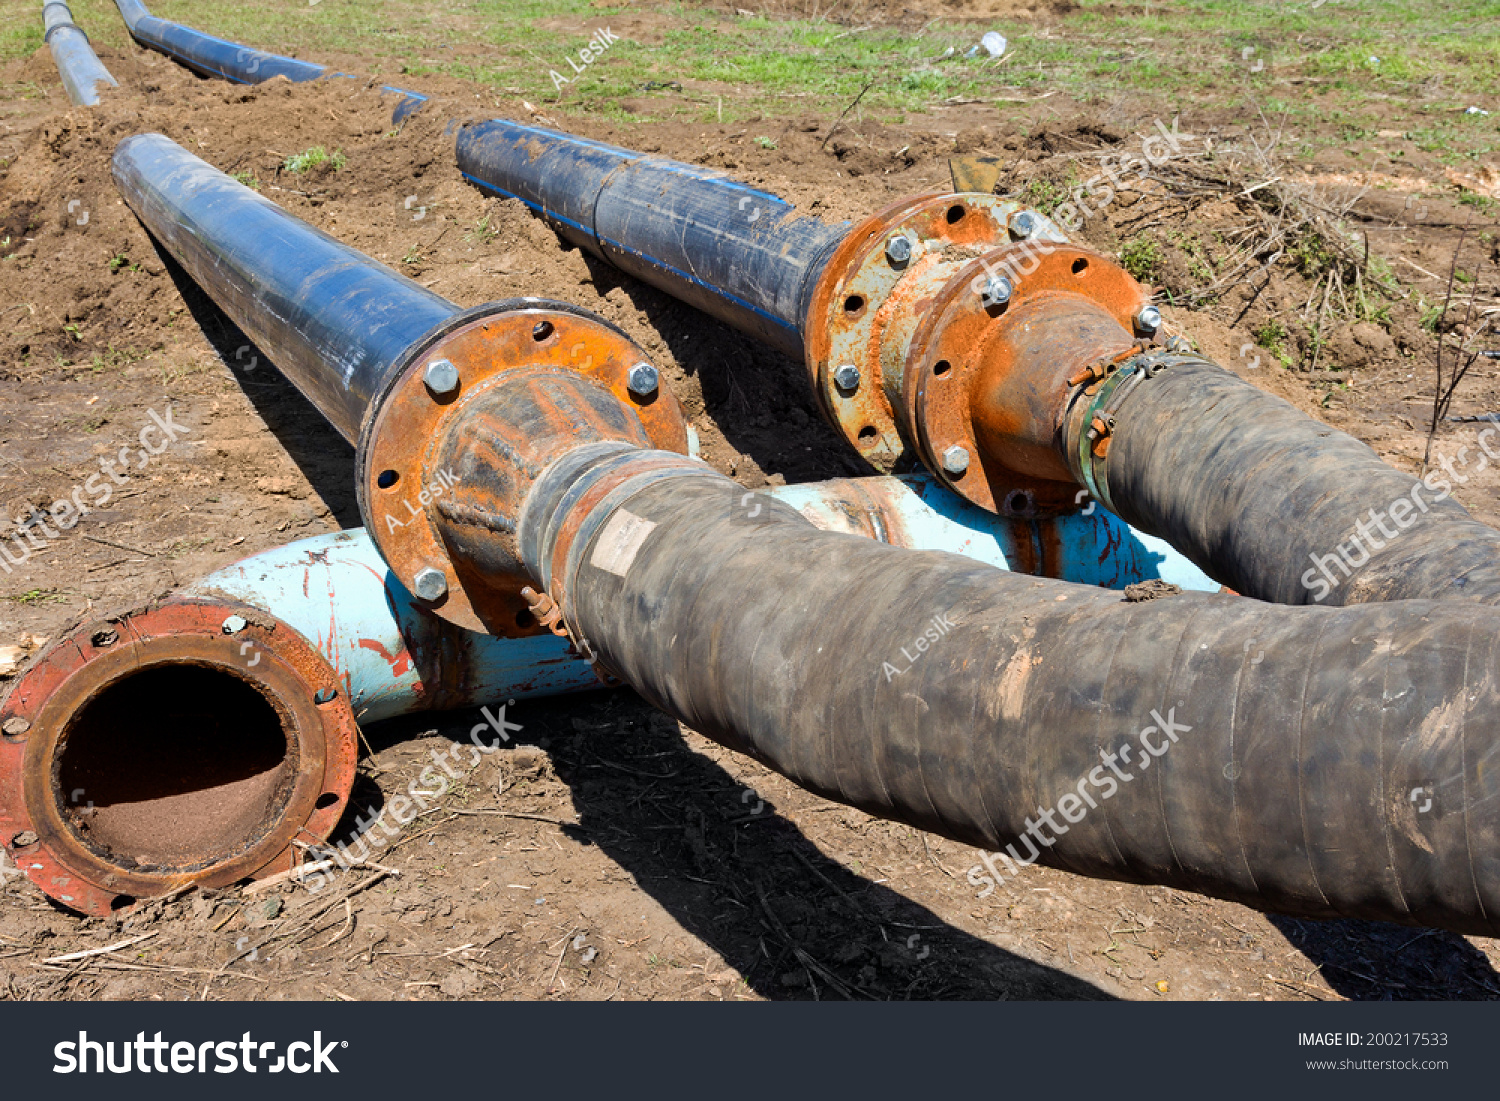 Sewage pumping station accident environmental man made for What are old plumbing pipes made of